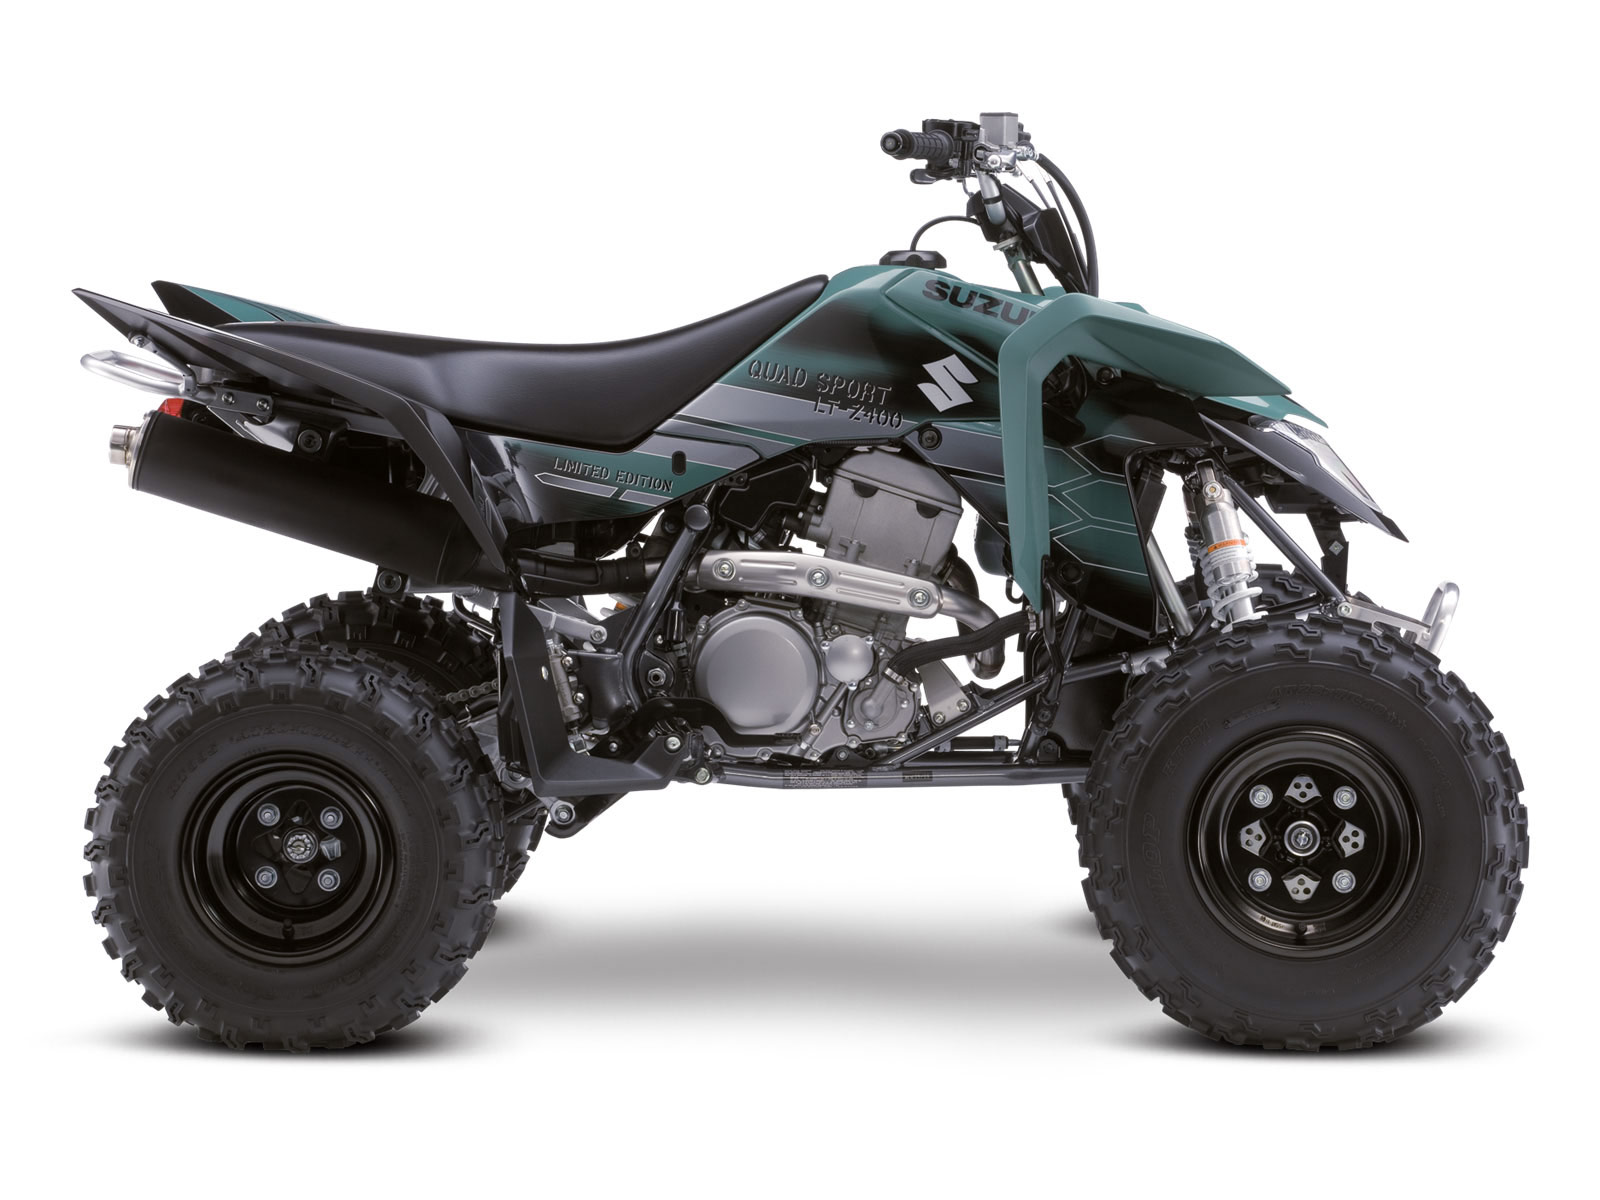 2012 suzuki quadsport z400 limited atv insurance. Black Bedroom Furniture Sets. Home Design Ideas